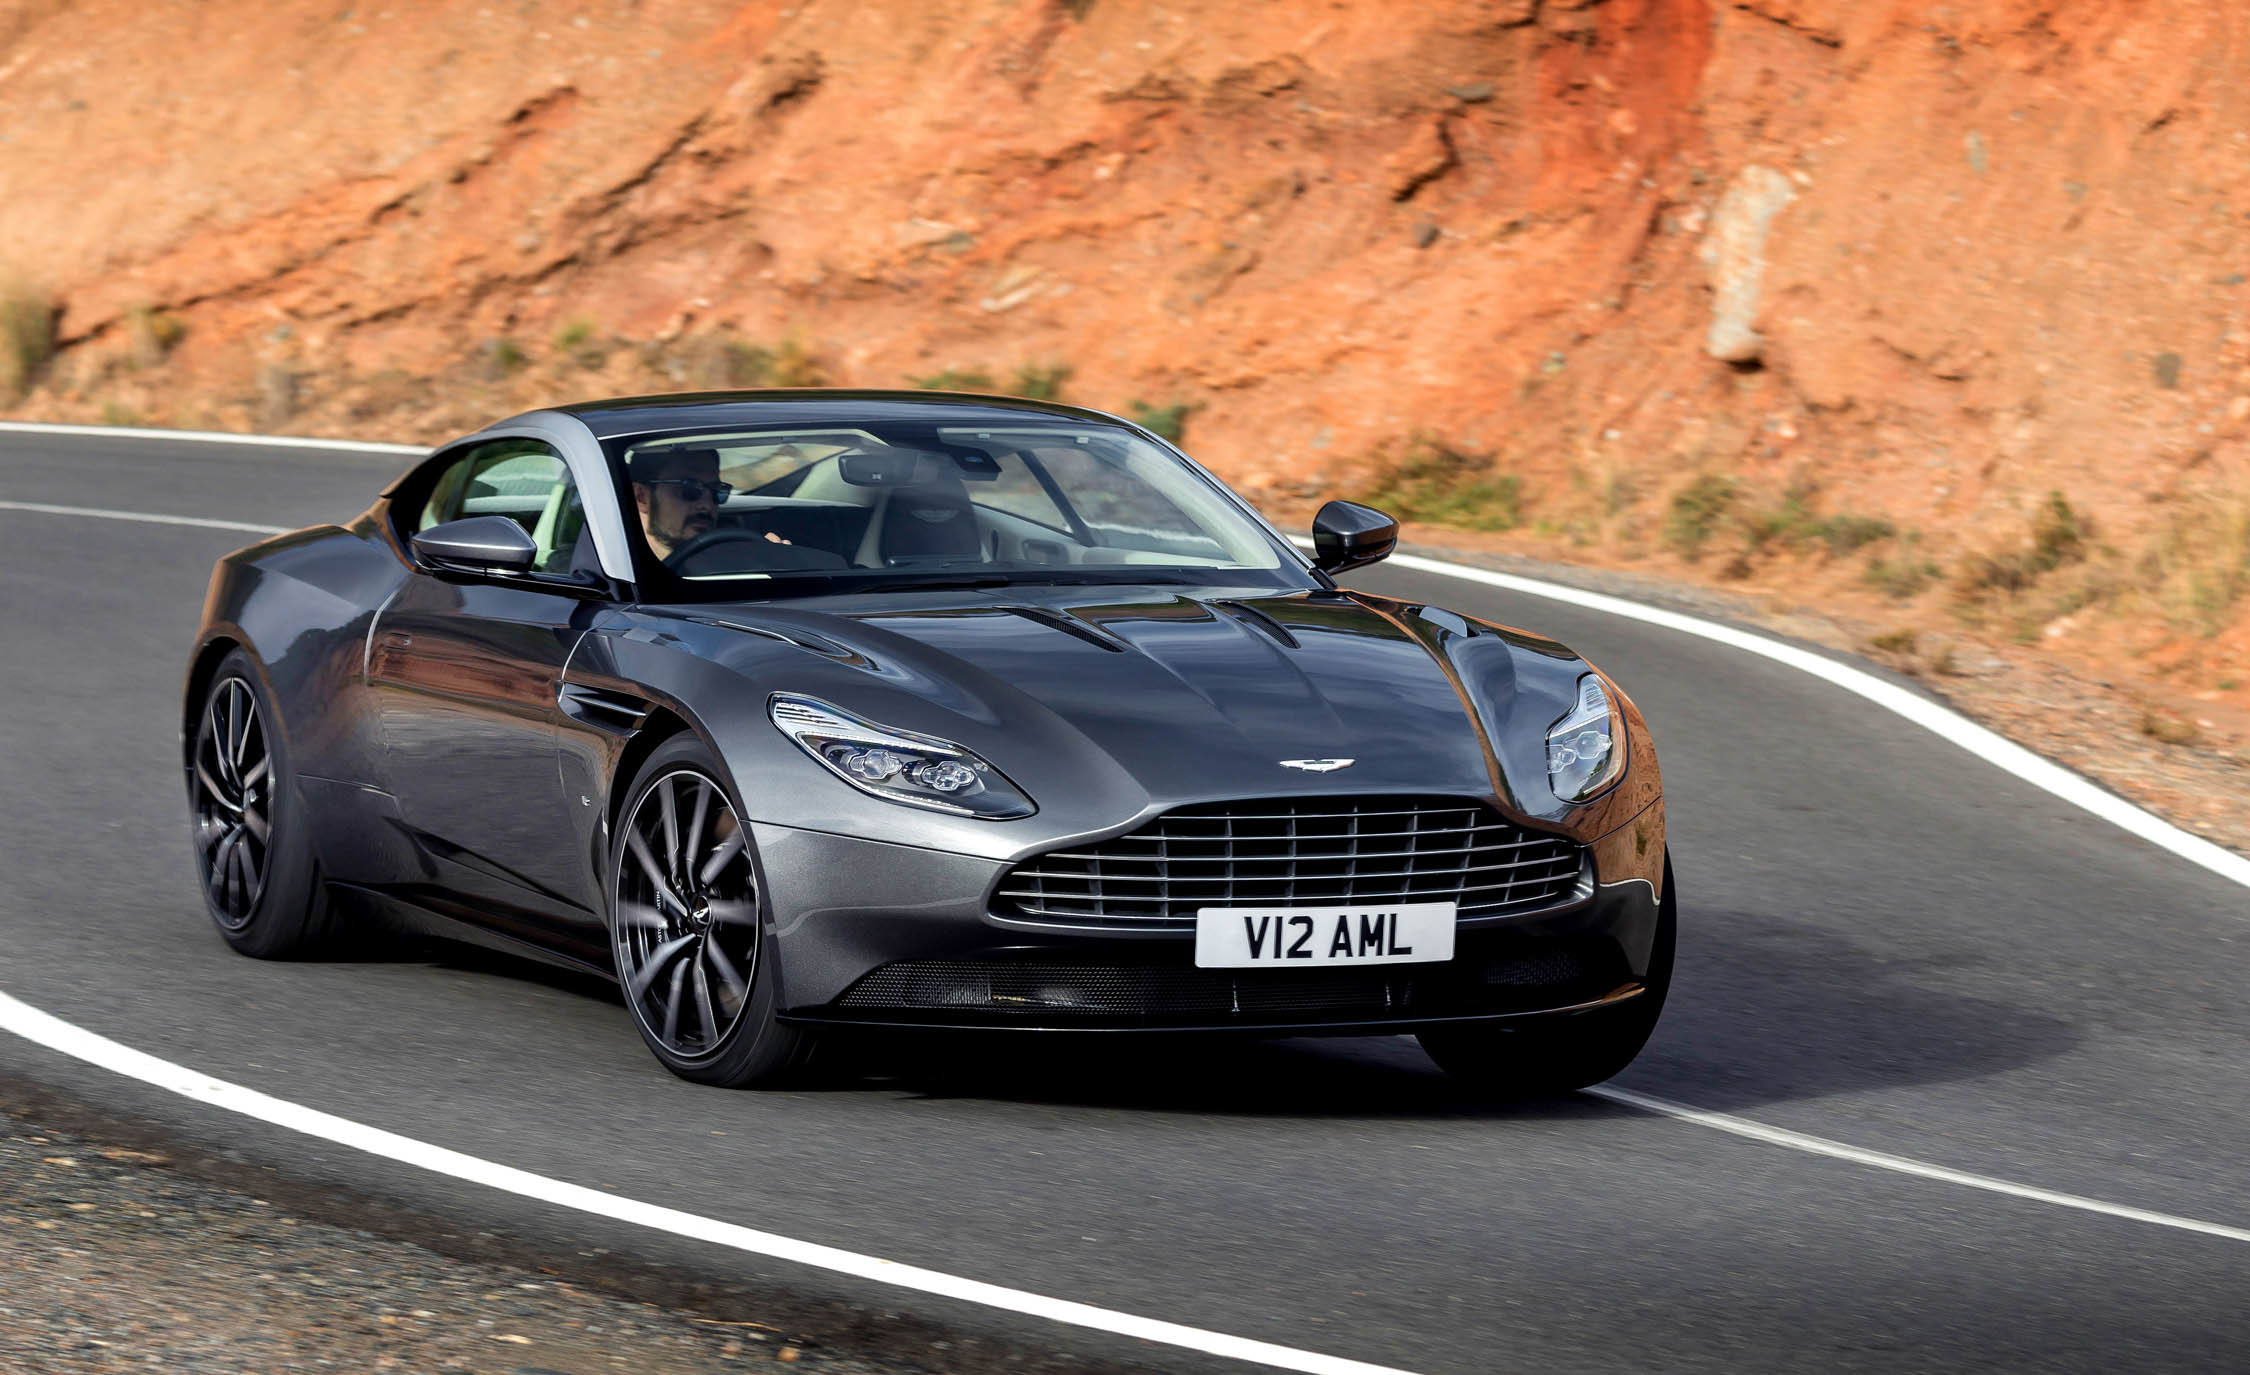 2017 Aston Martin Db11 Preview (View 12 of 22)